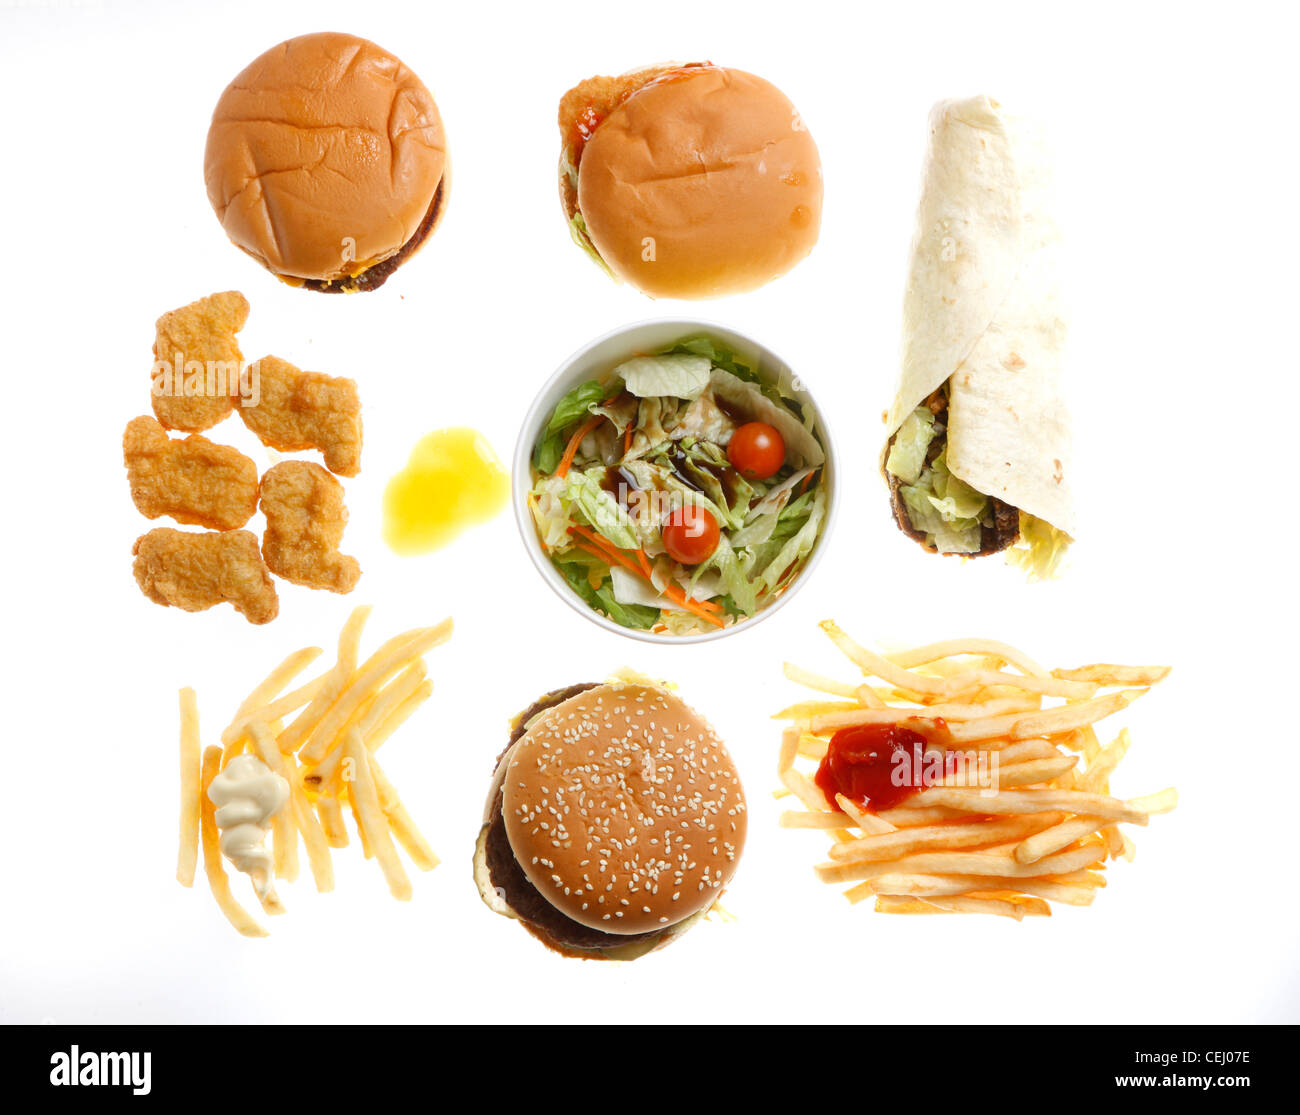 Fast Food, Nutrition. Different Fast Food Products. Burger